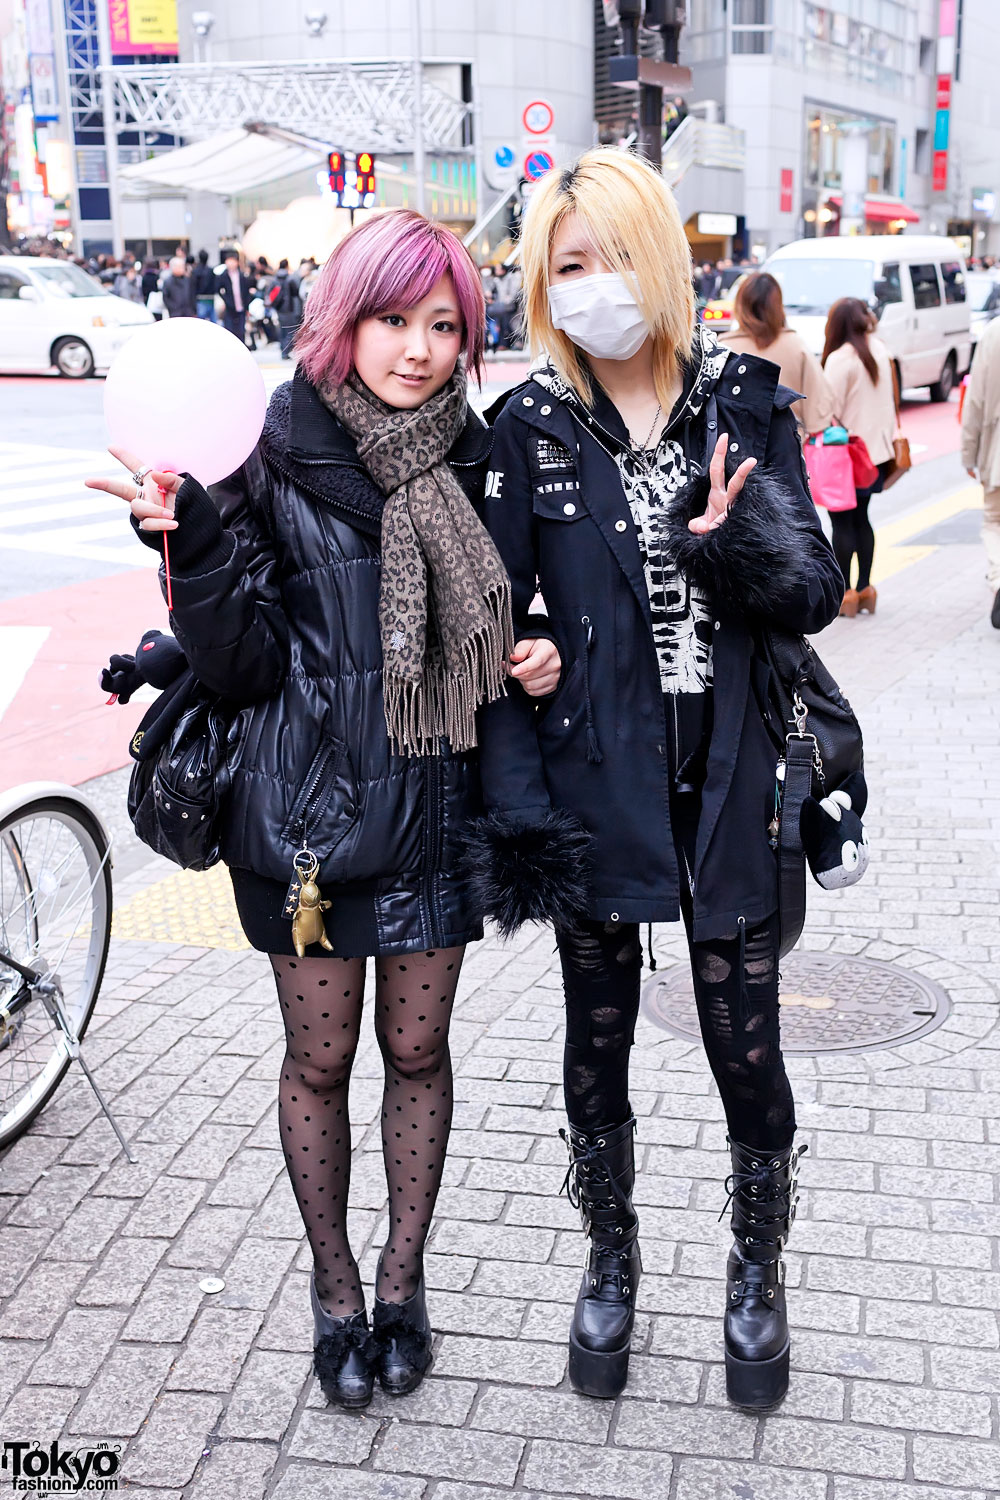 Platform Buckle Boots Ripped Leggings Pink Hair In Shibuya